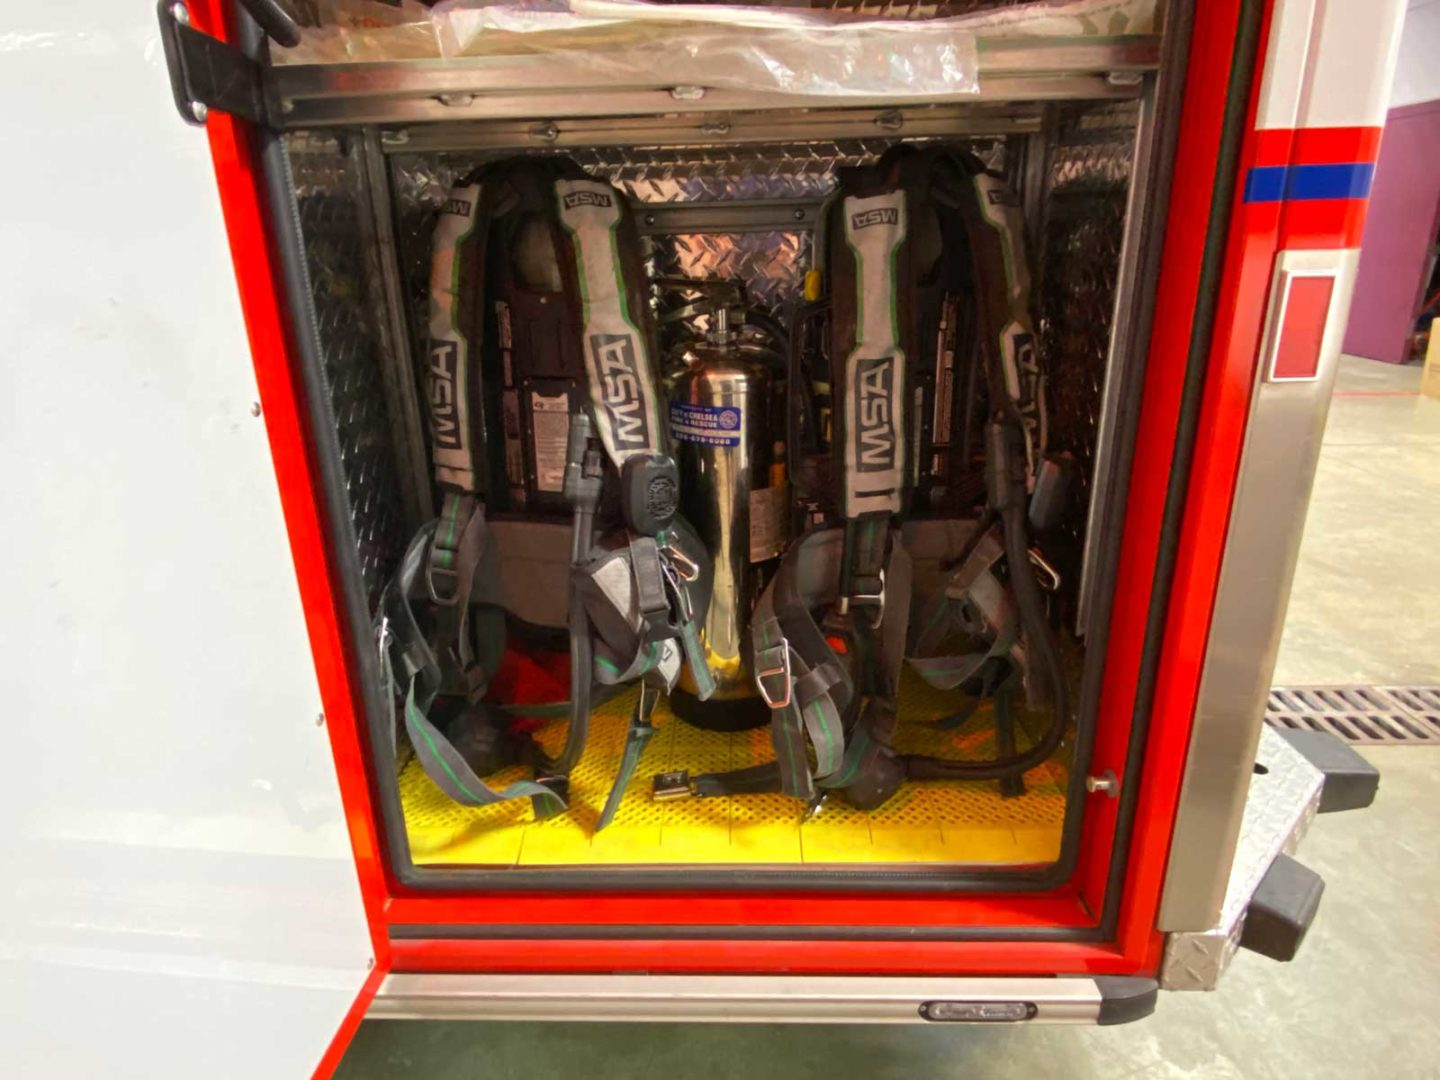 Firefighter SCBA inside a compartment